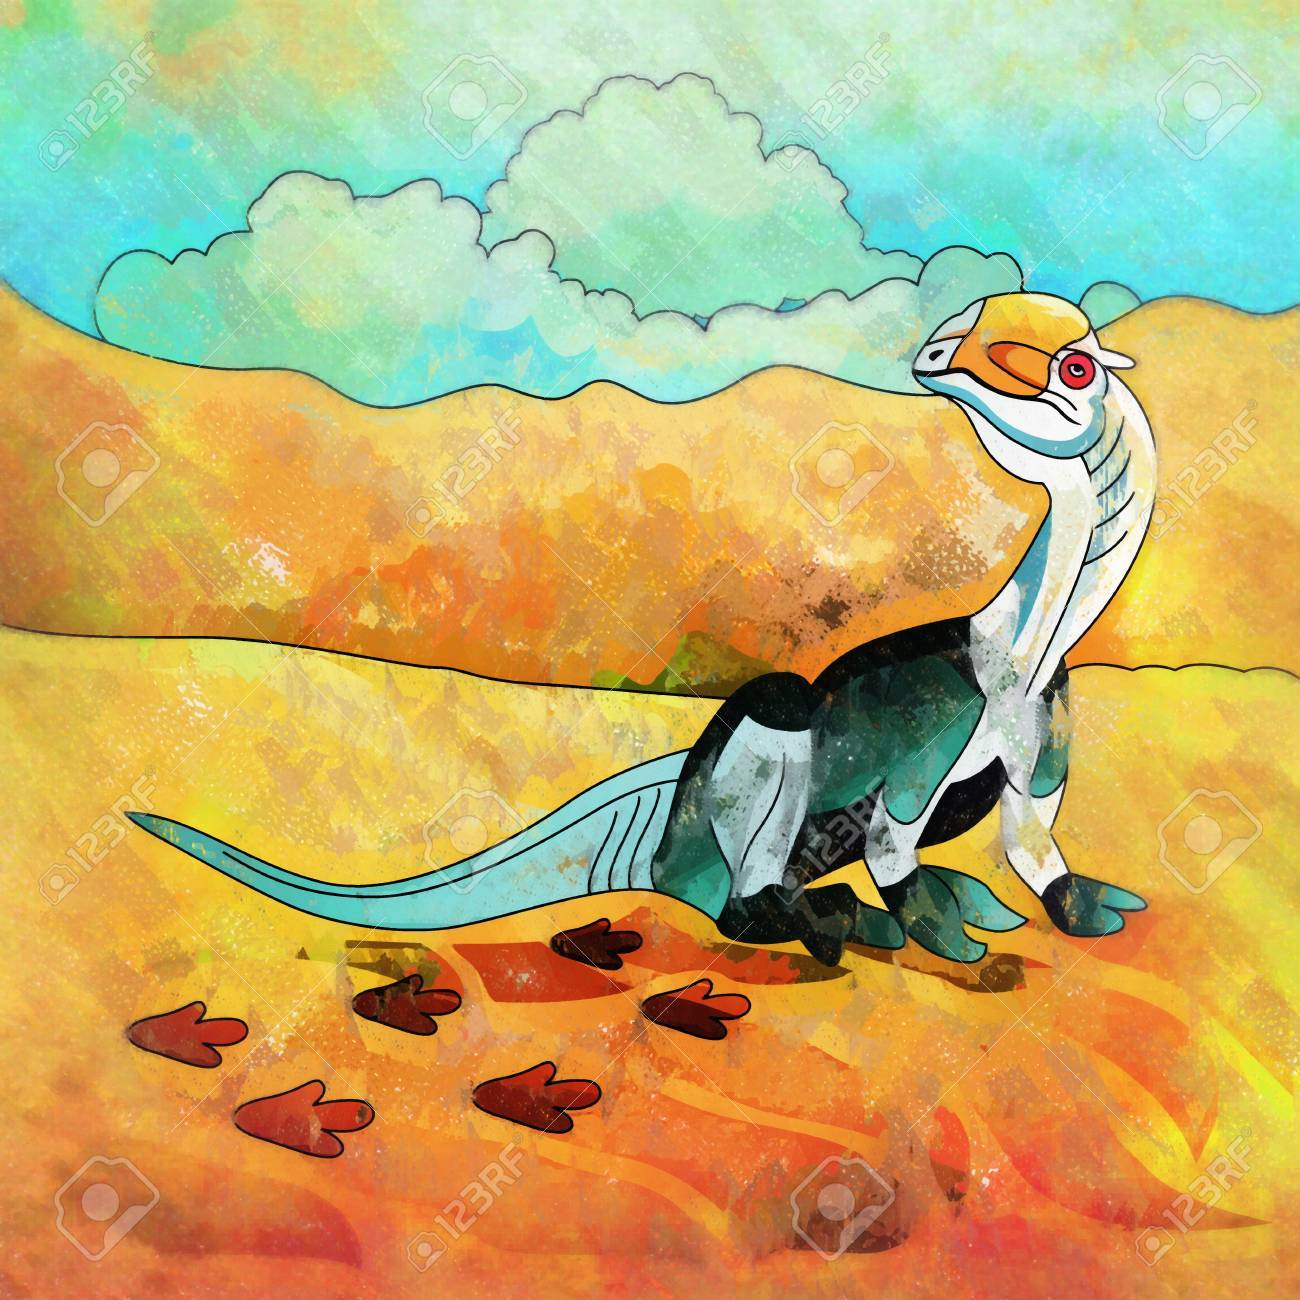 Dilophosaurus Illustration Of A Dinosaur In Its Habitat Stock